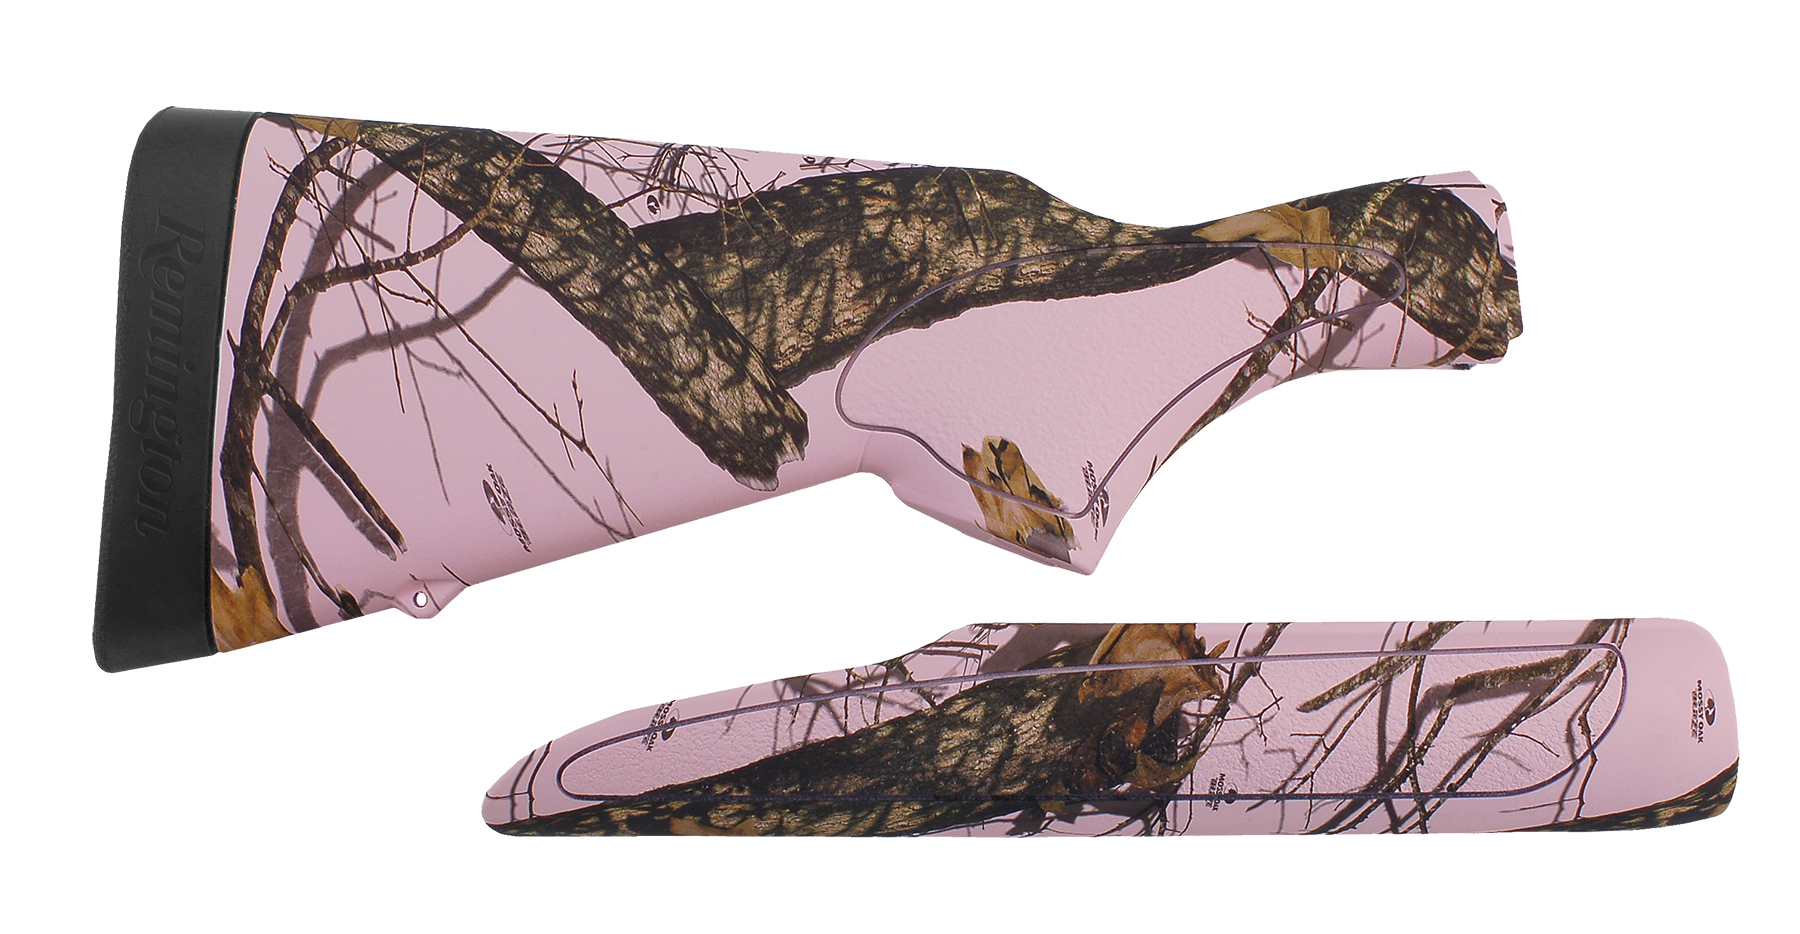 Remington 19529 870 20ga Stock/Forend Syn Mossy Oak Pink